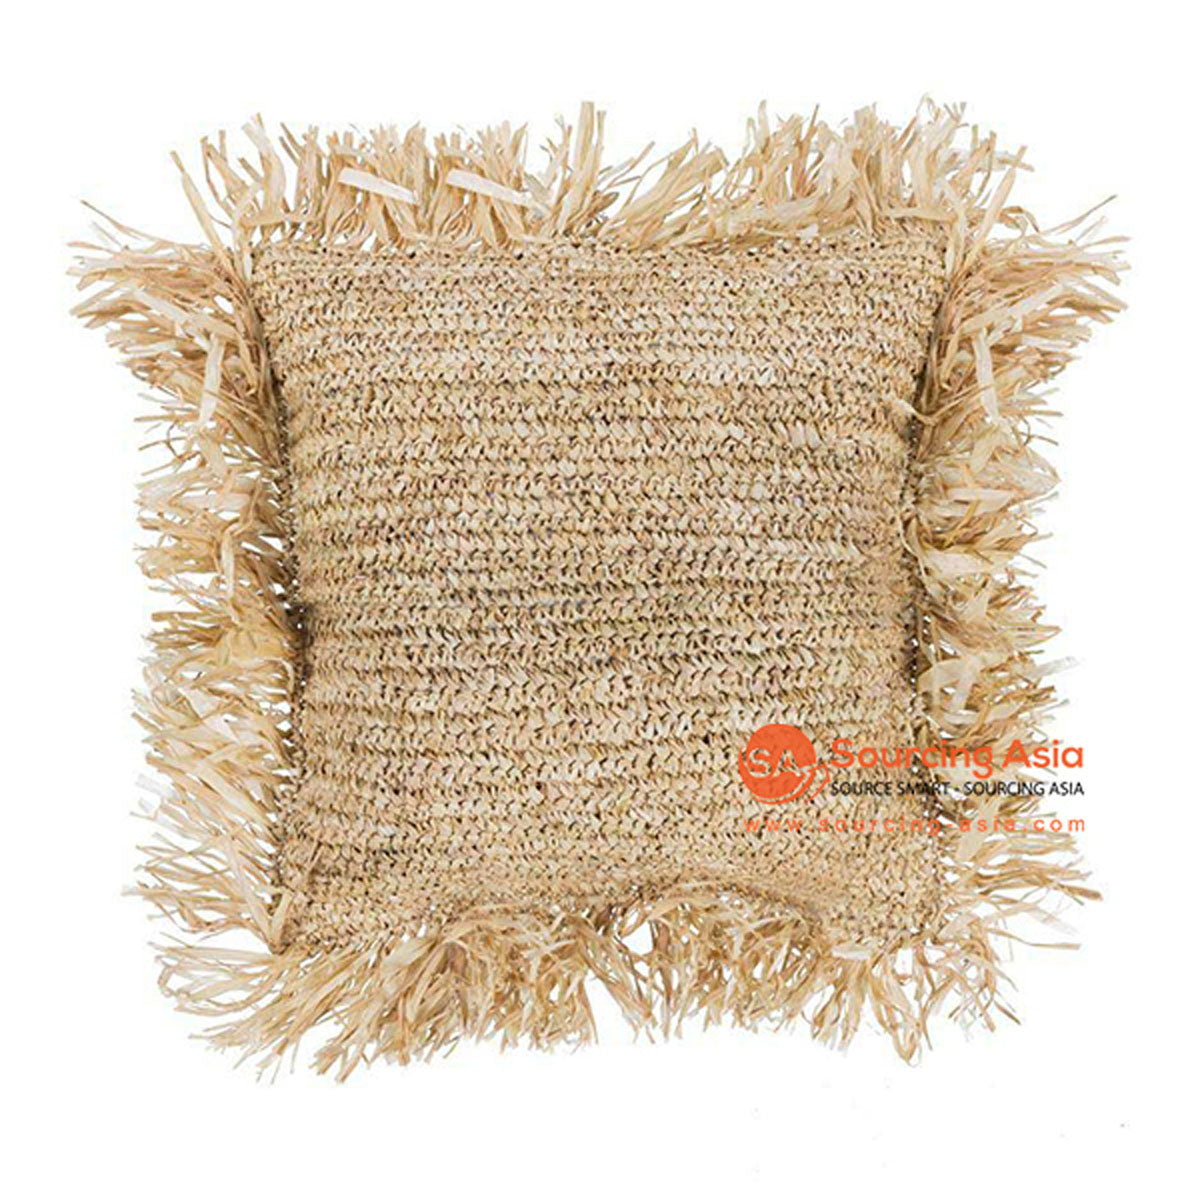 SHL049A NATURAL RAFFIA SQUARE COVER CUSHION WITH FRINGE